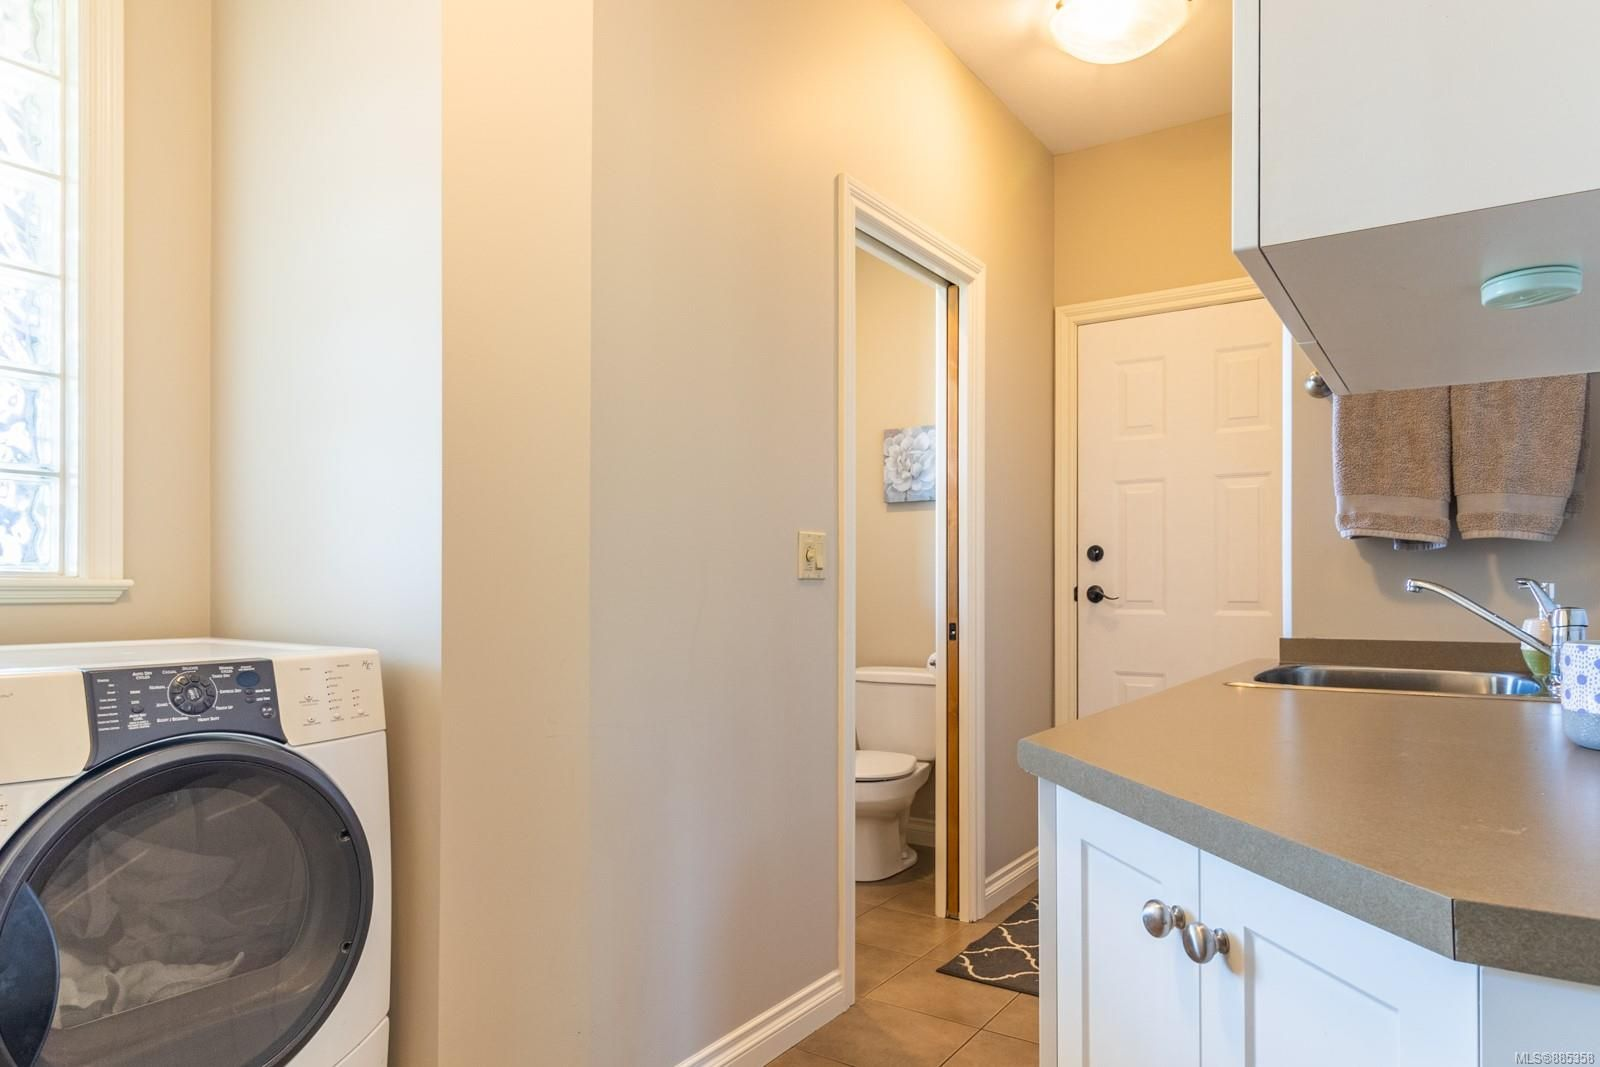 Photo 29: Photos: 2850 Peters Rd in : PQ Qualicum Beach House for sale (Parksville/Qualicum)  : MLS®# 885358